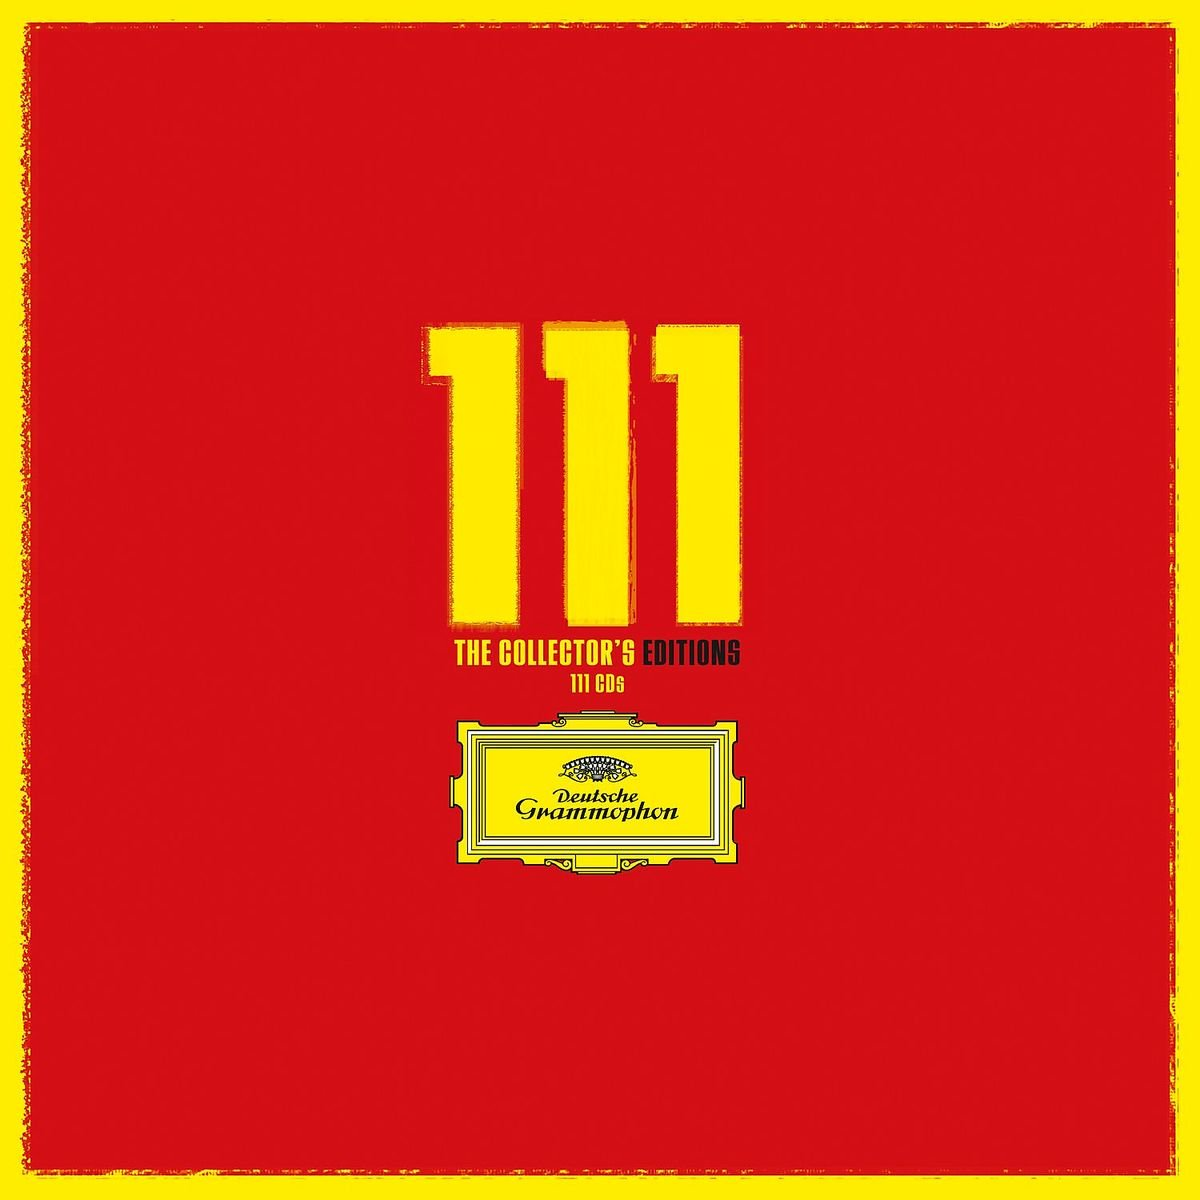 111 The Collector's Edition [111 CD][Limited Edition Box Set] by CD